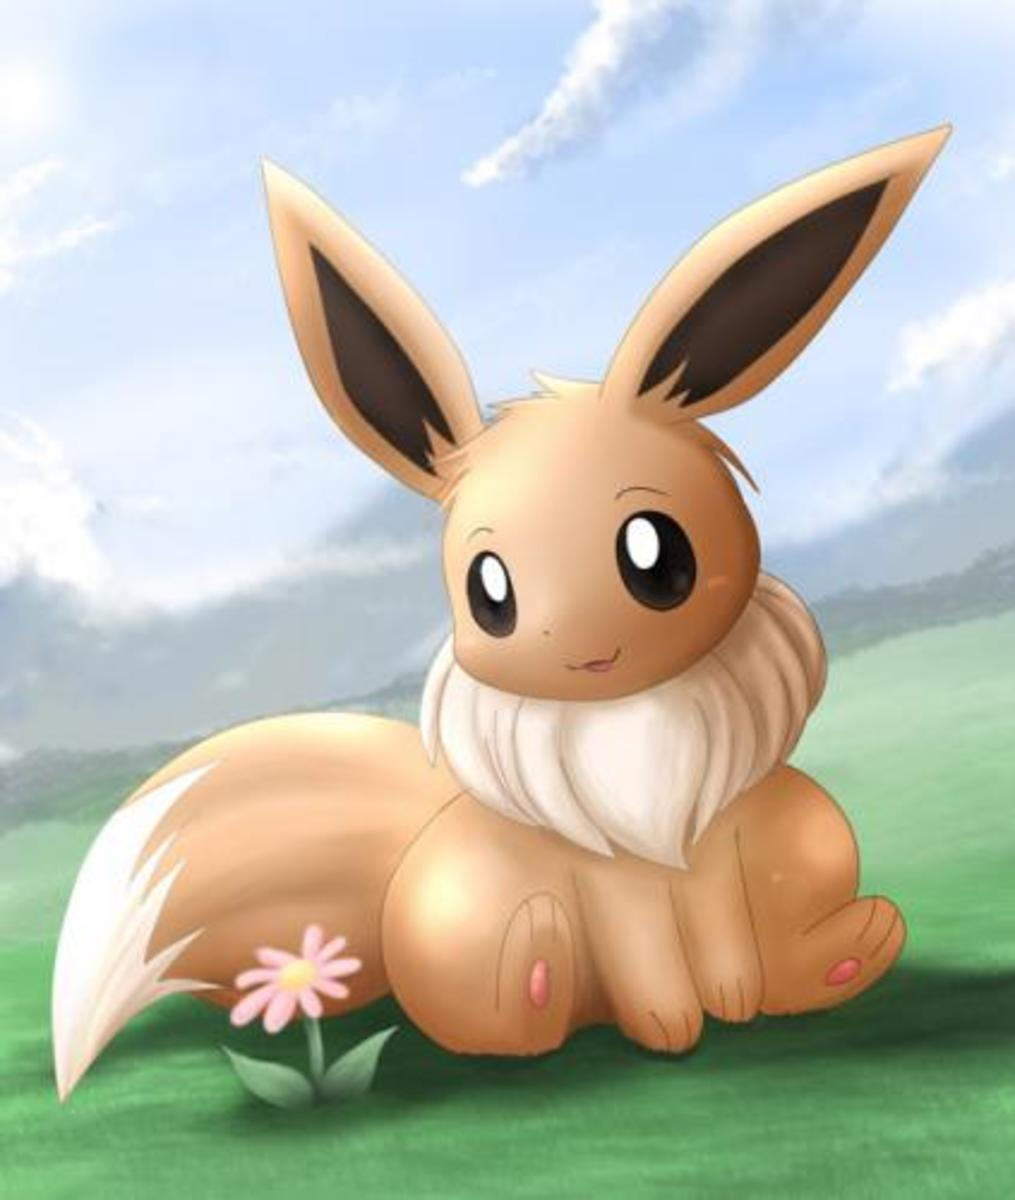 Eevee - the cutest Pokemon ever?